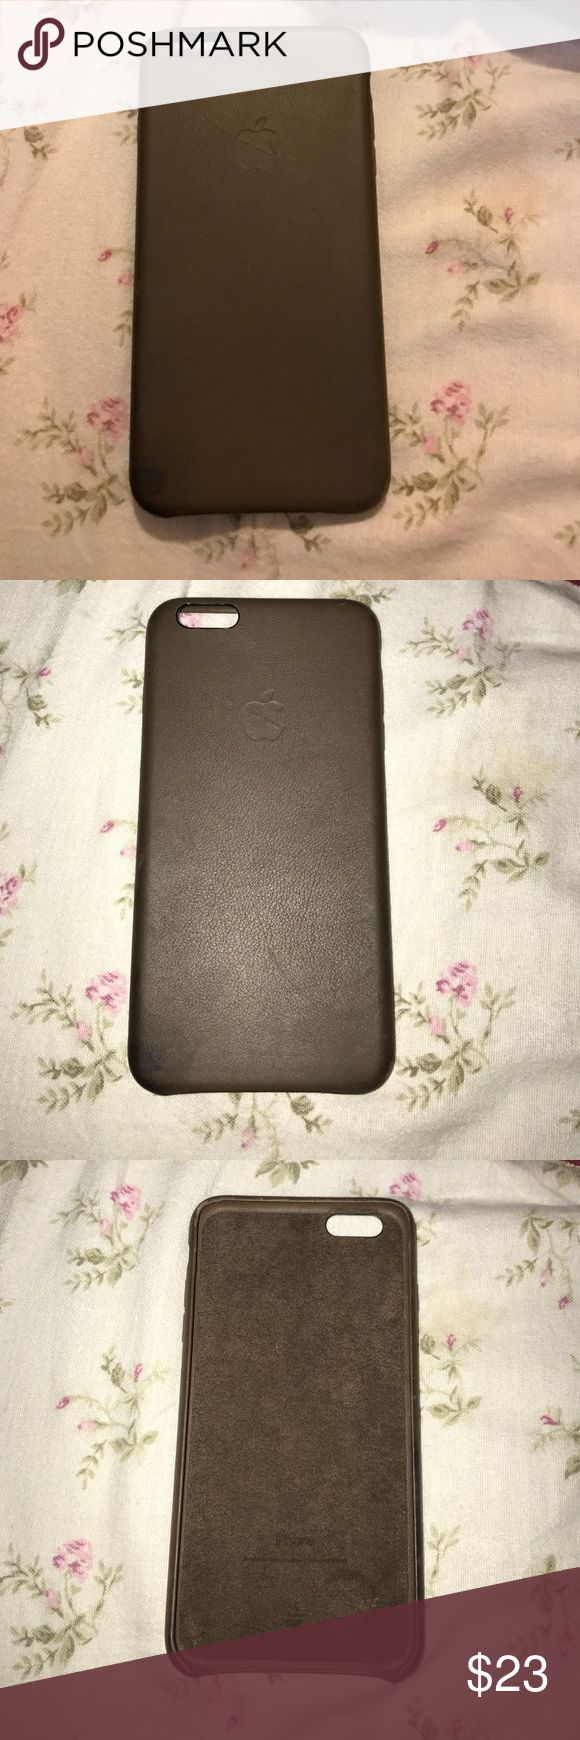 IPhone plus 6/6s leather case Hardly used IPhone 6/6s case bought it with IPhone at the Apple Store. It was $53 with taxes so real leather! apple Accessories Phone Cases